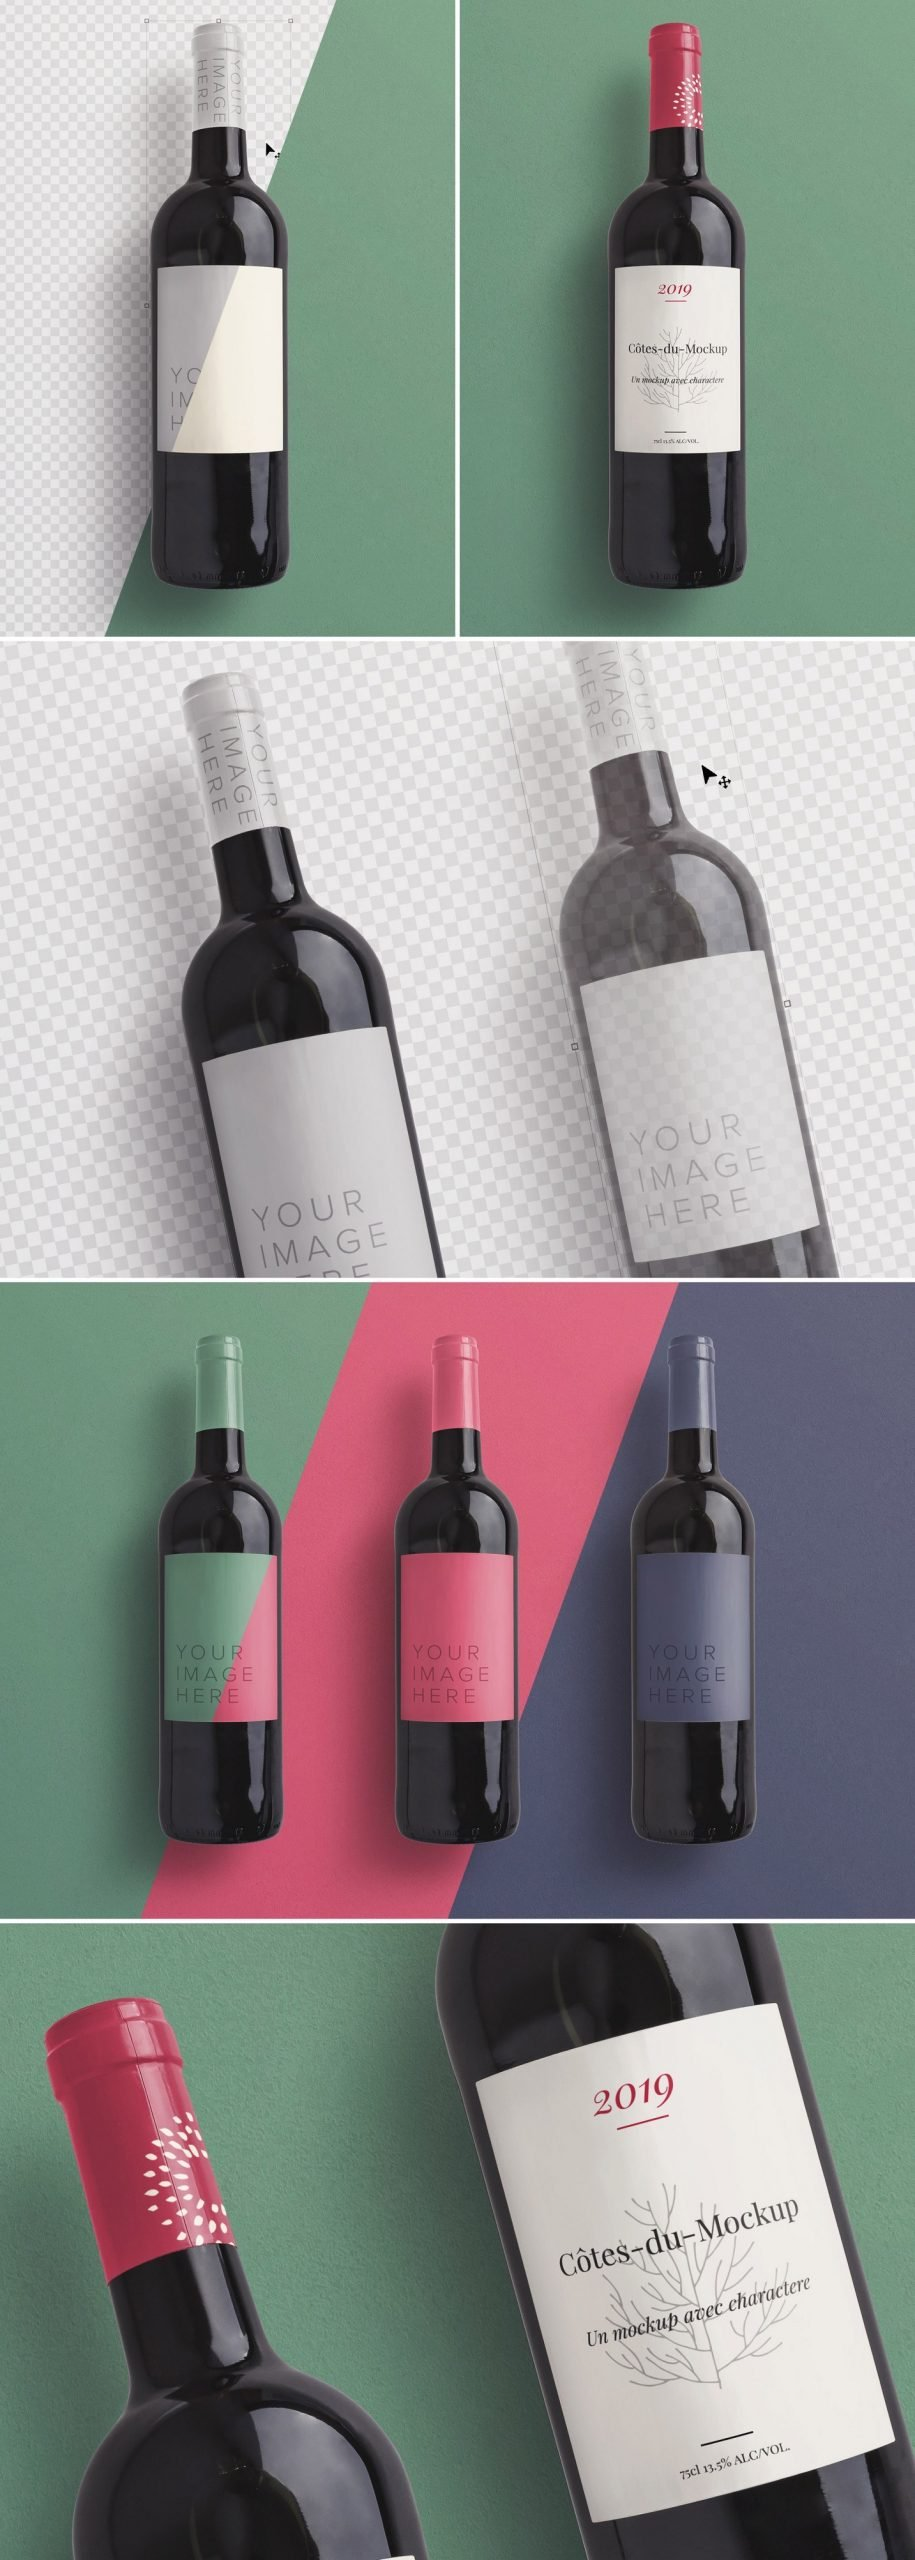 wine bottle mockup preview1 1 scaled